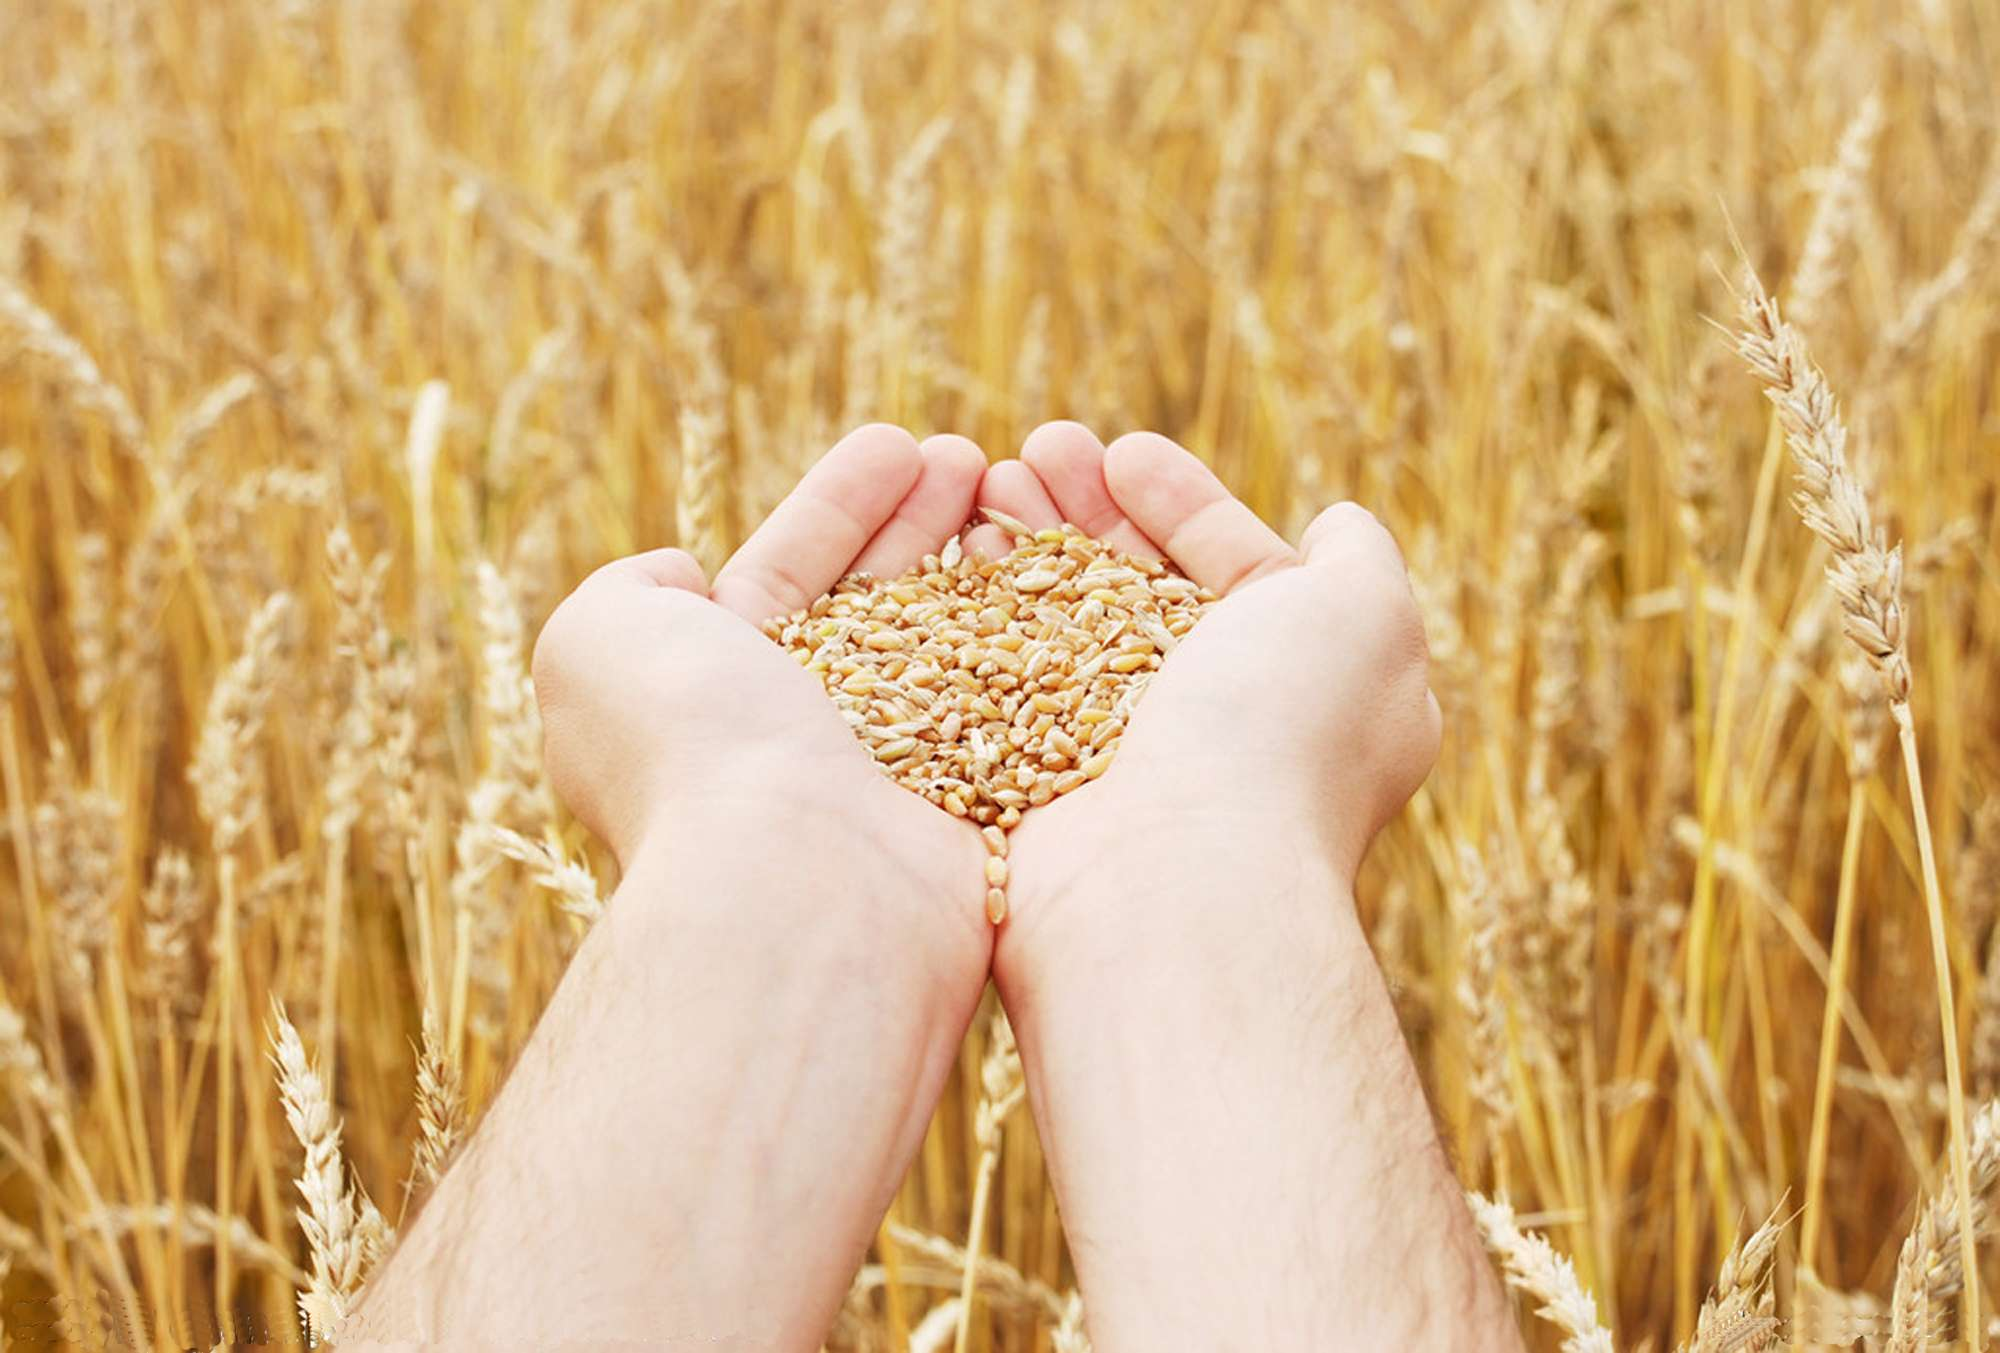 fafd8541eba9b9273f54aabf902e4ad4 - Kazakhstan changes the strategy of the grain export